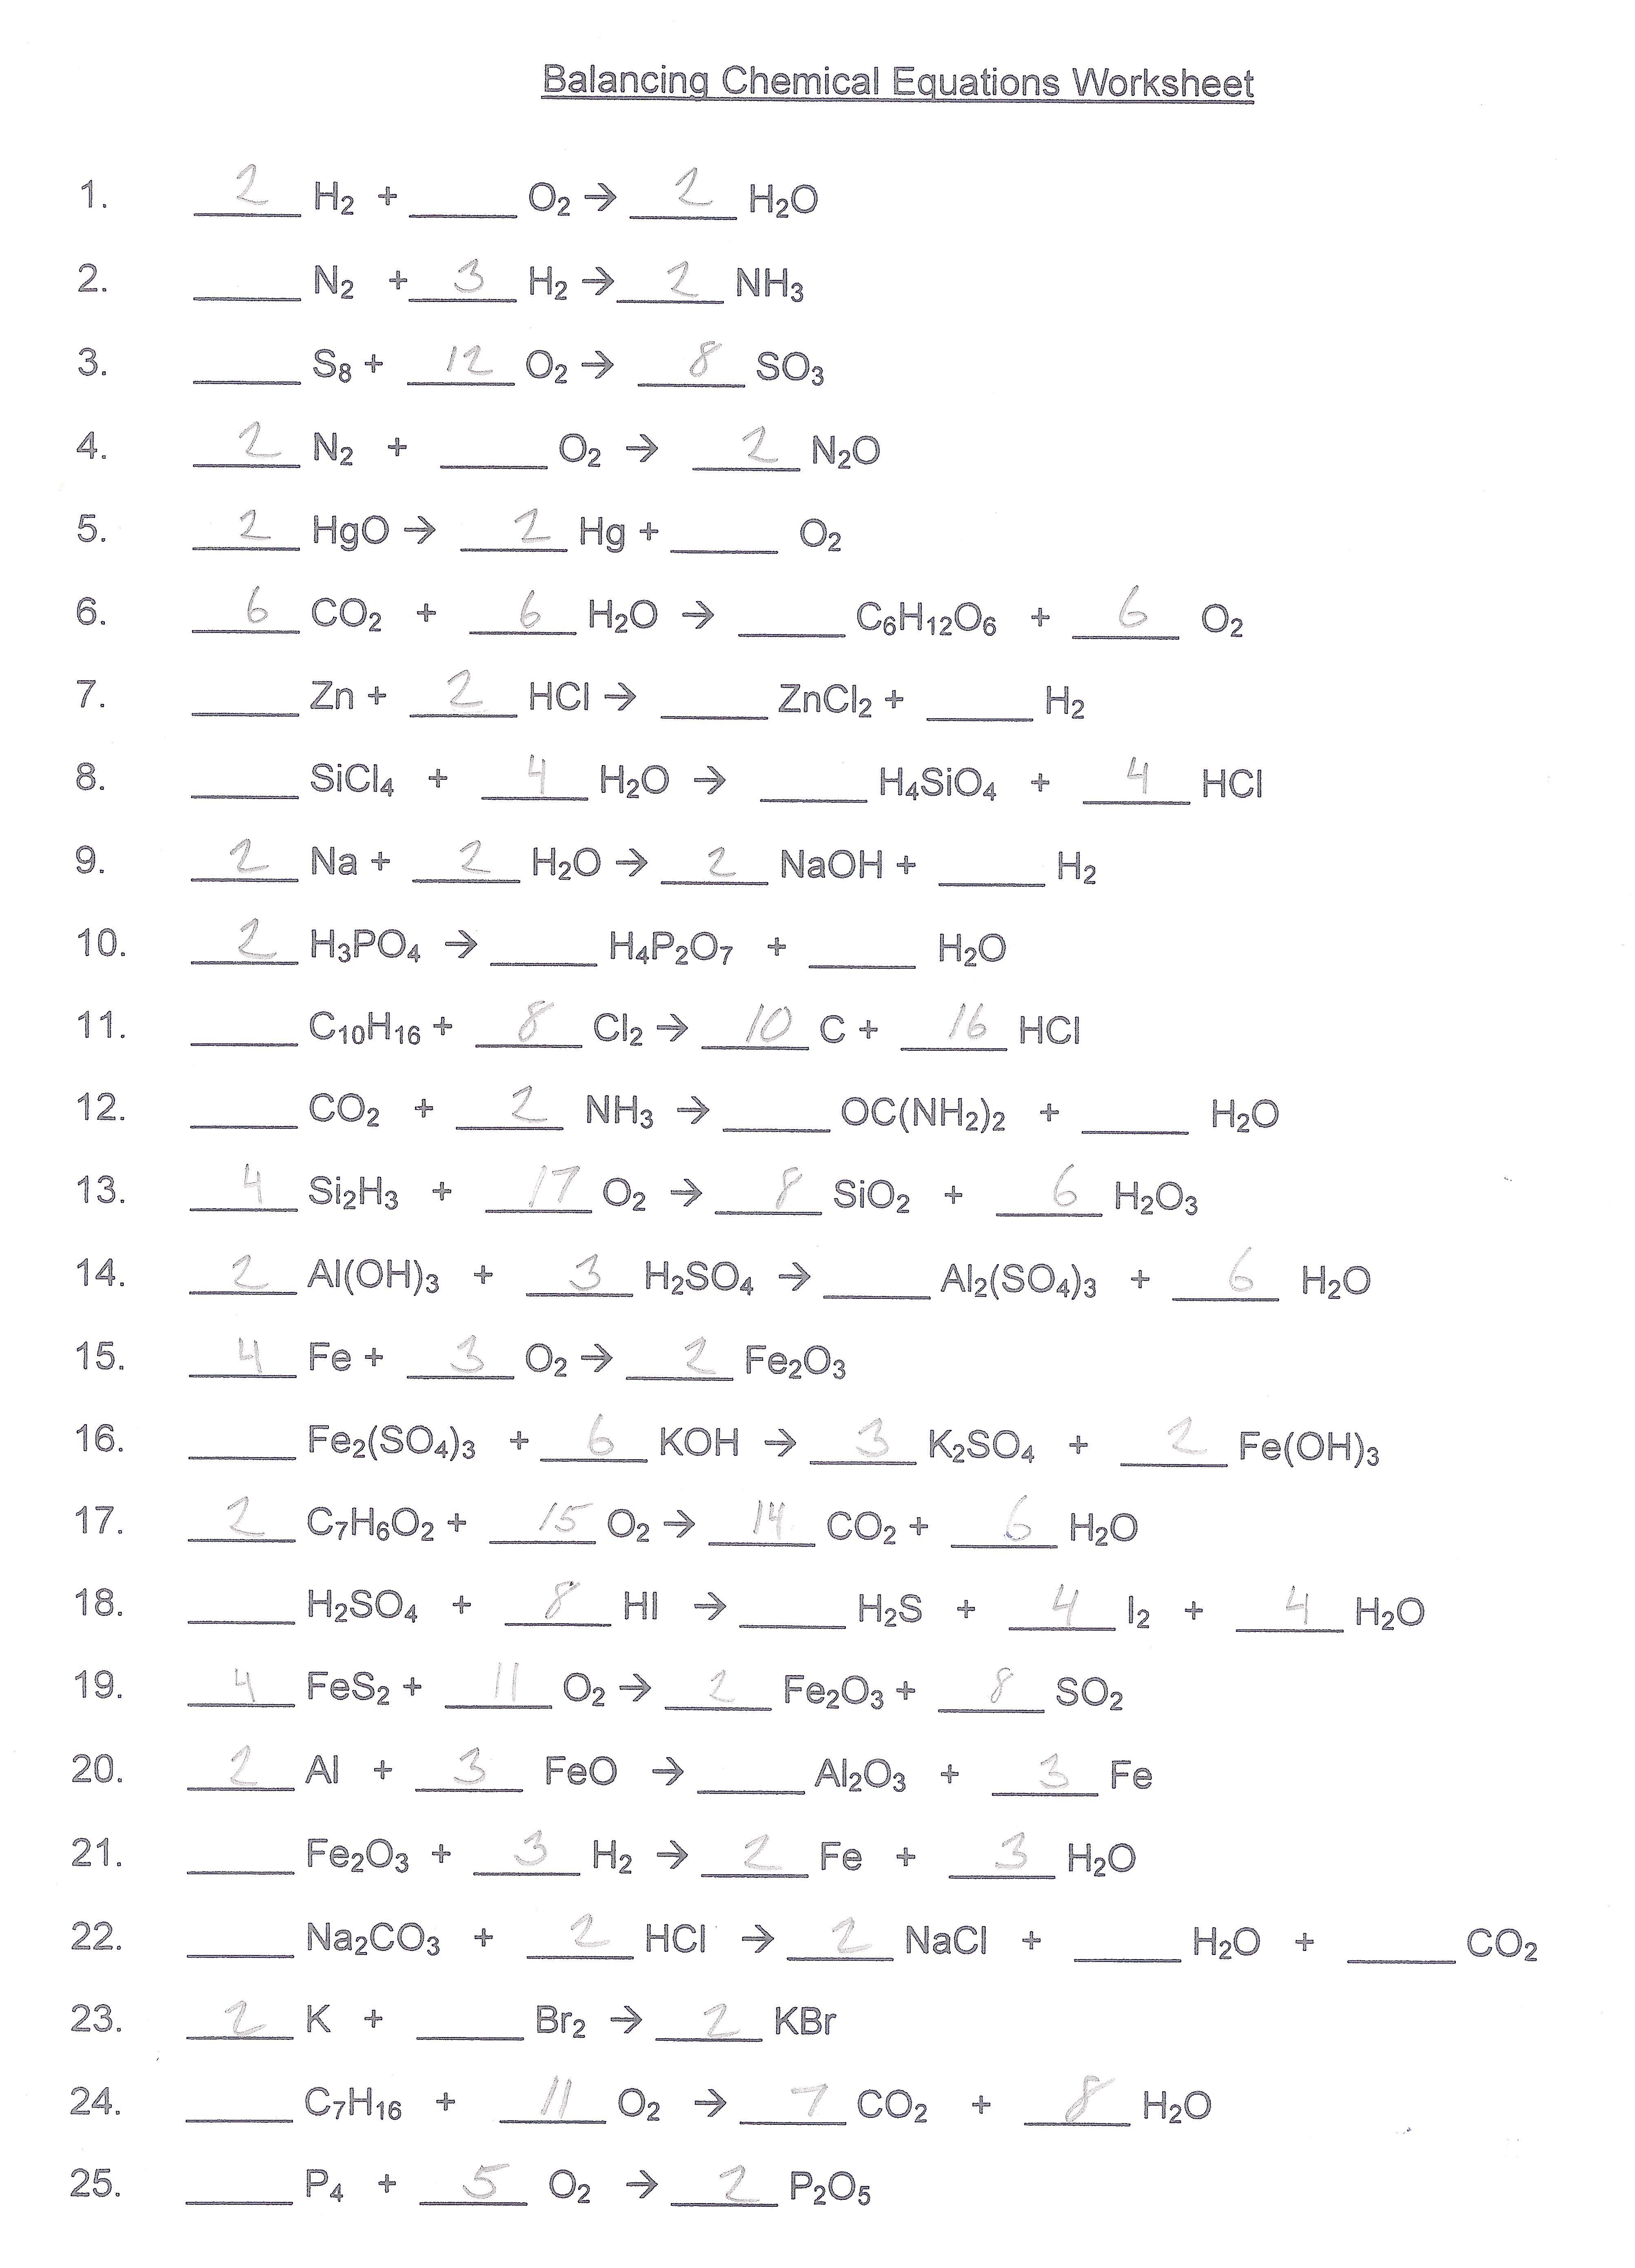 worksheet Chemistry Balancing Chemical Equations Worksheet balancing chemical equations worksheet maker customizable and answer key chemistry